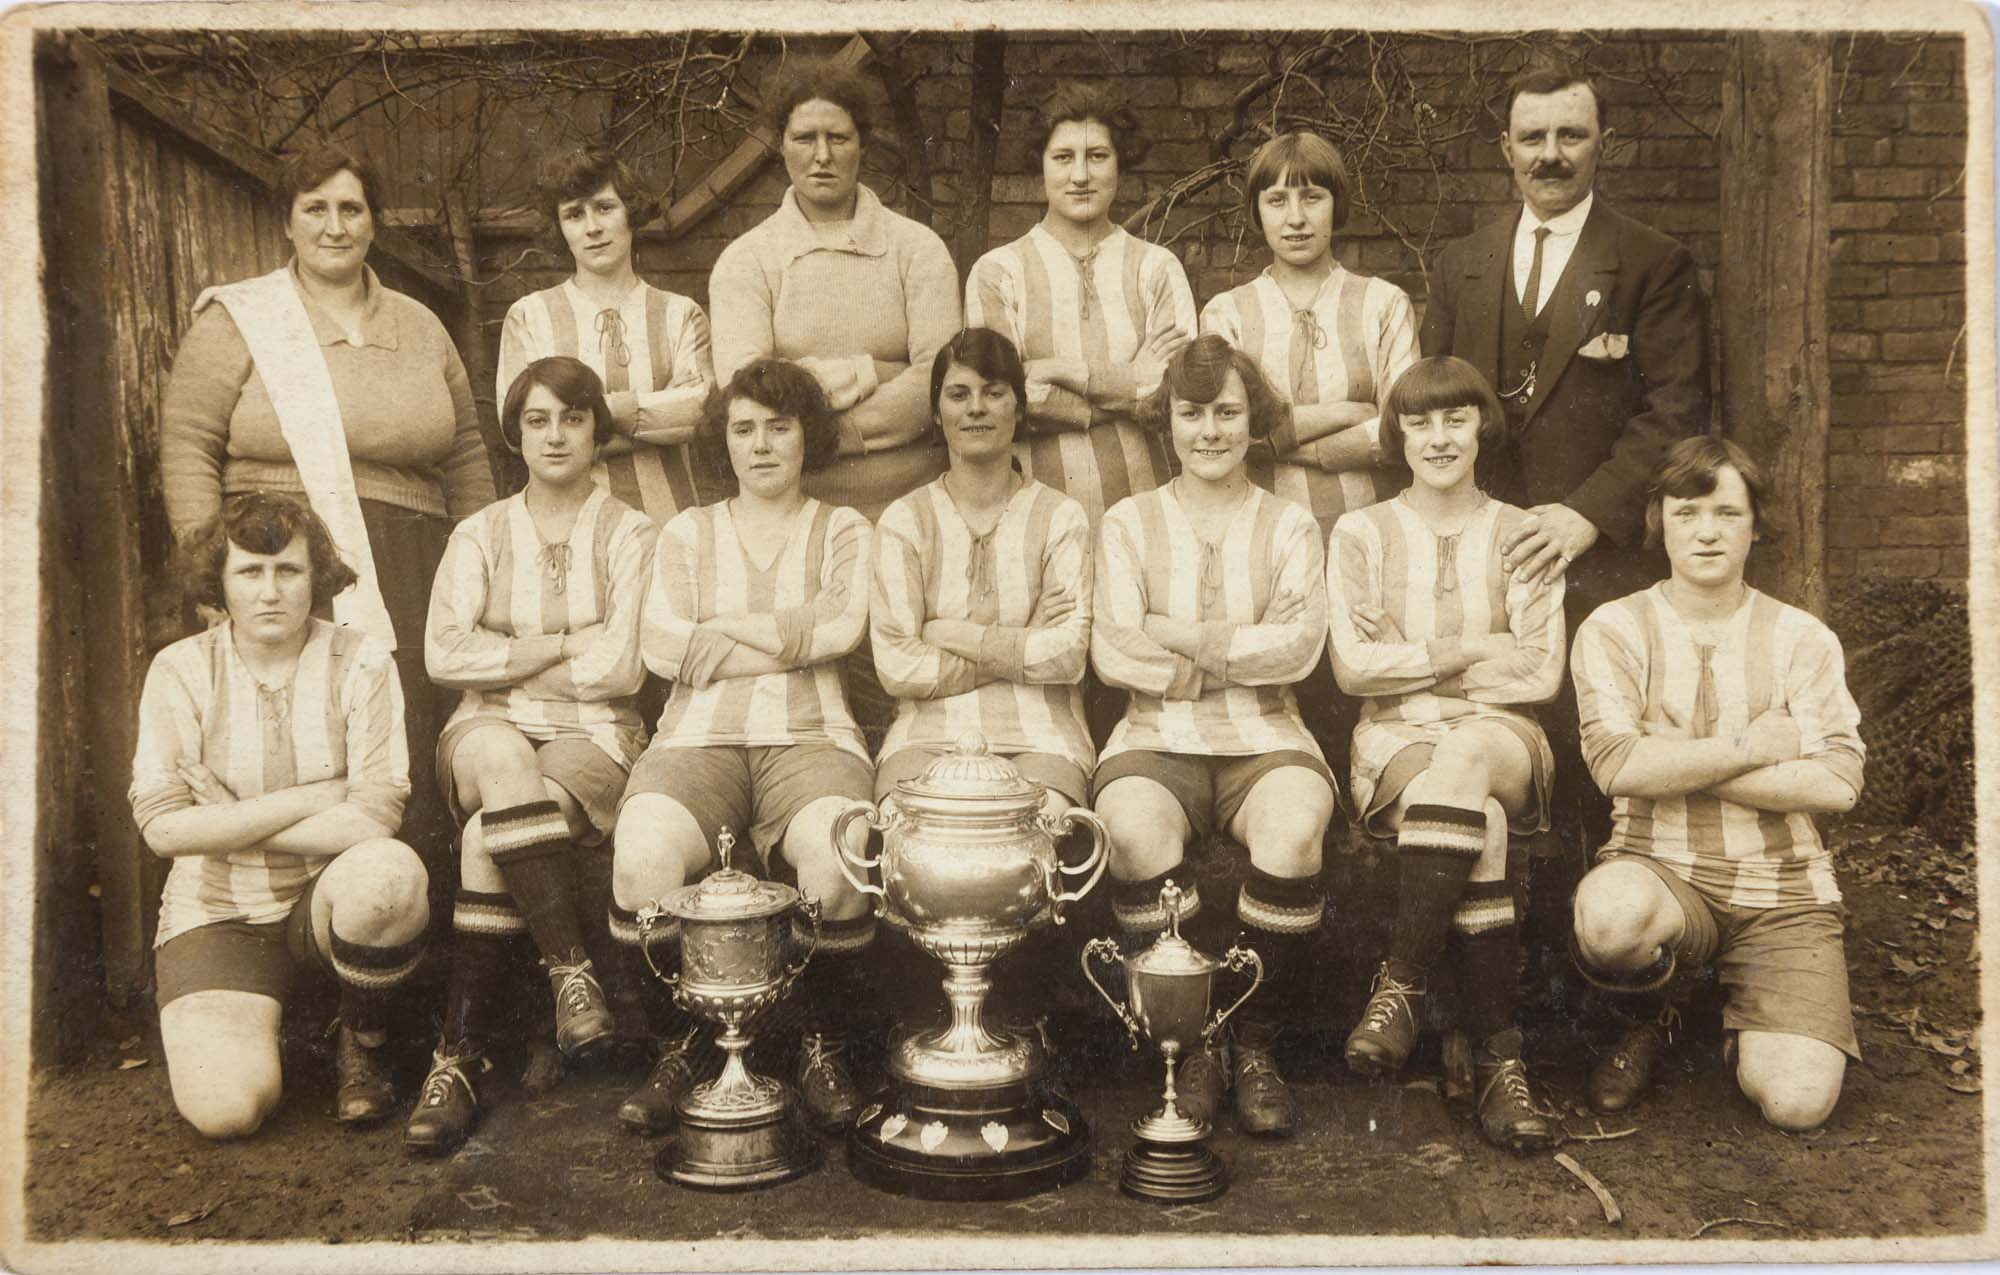 a black and white photo of a team of women footballers in striped kits with their male manager back left